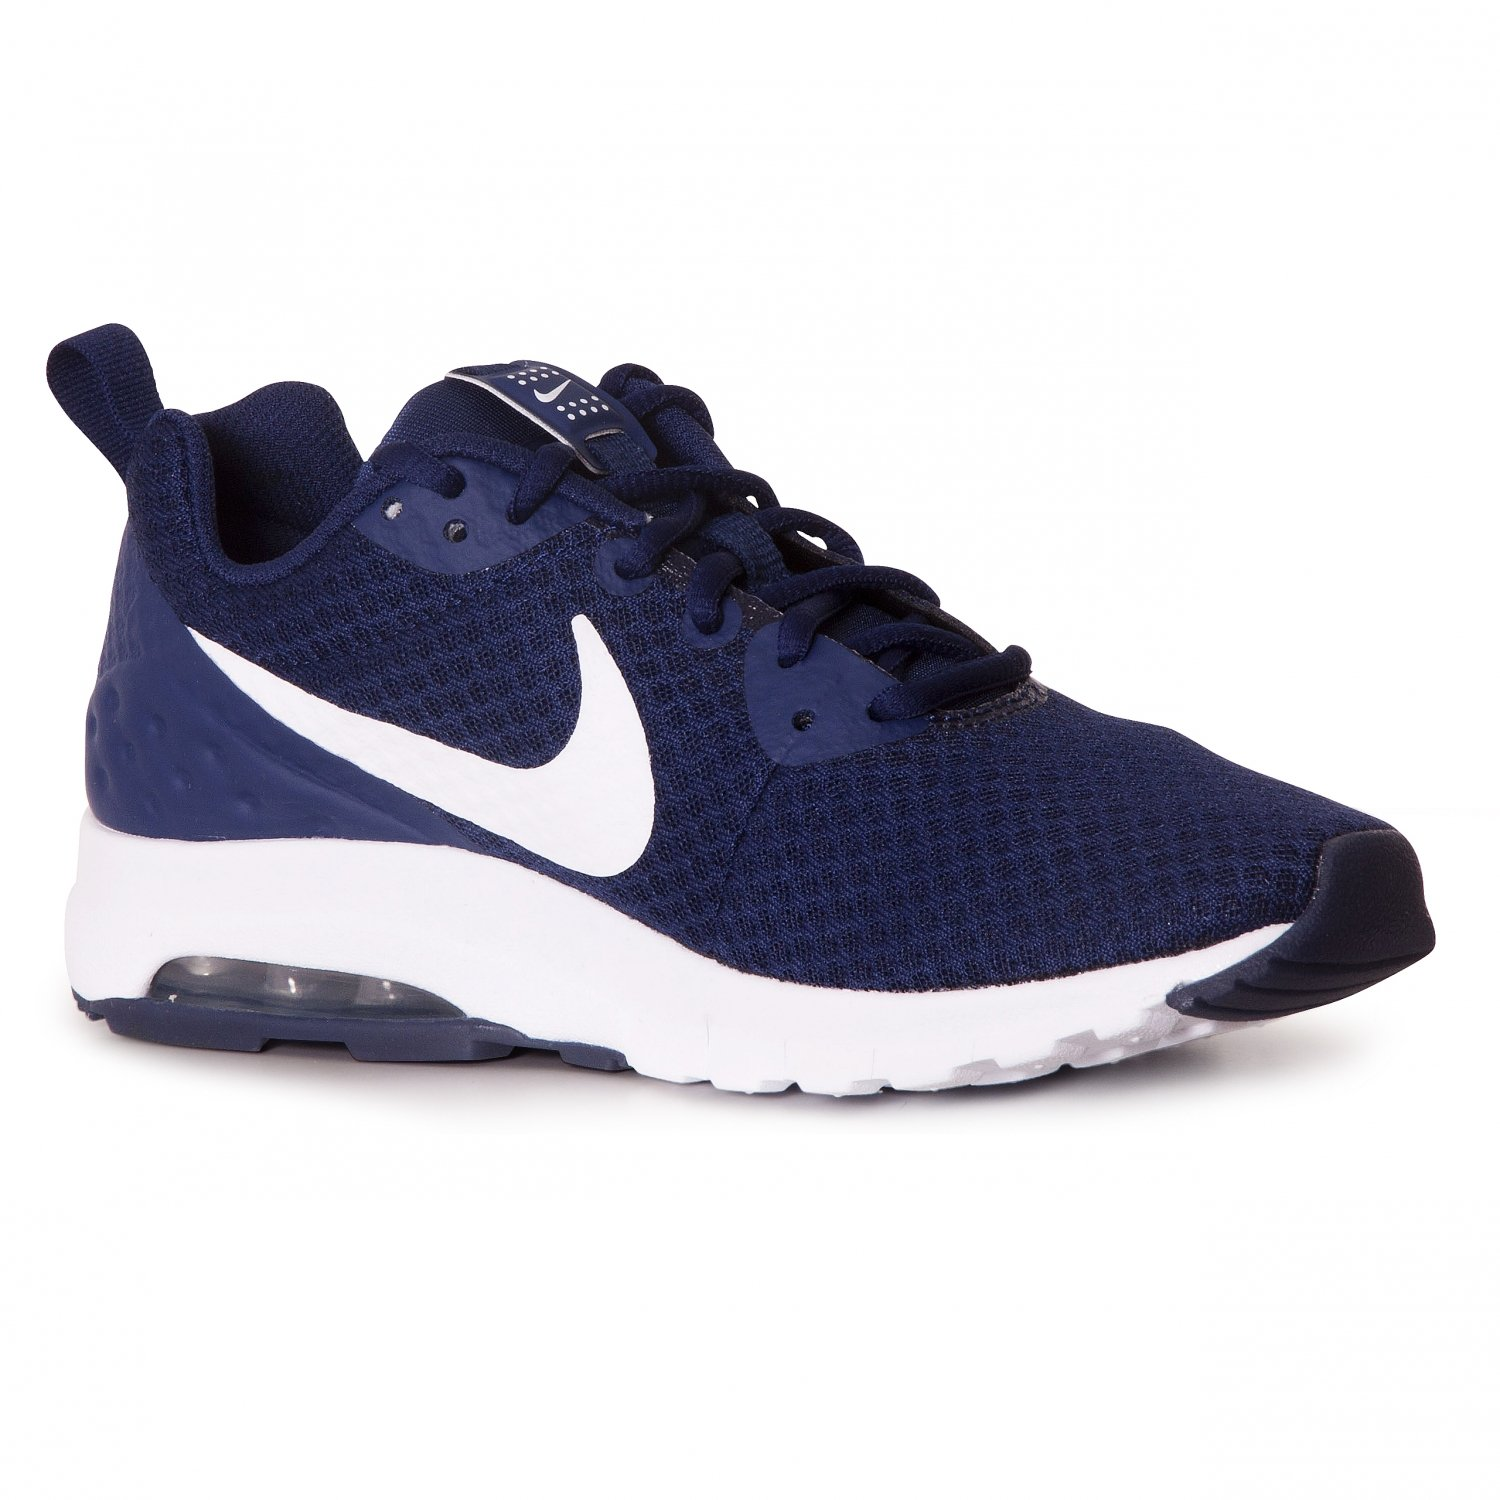 low priced 136df 5d1f6 Galleon - NIKE Women s Air Max Motion LW Running Shoe, Binary Blue White,  11 B US